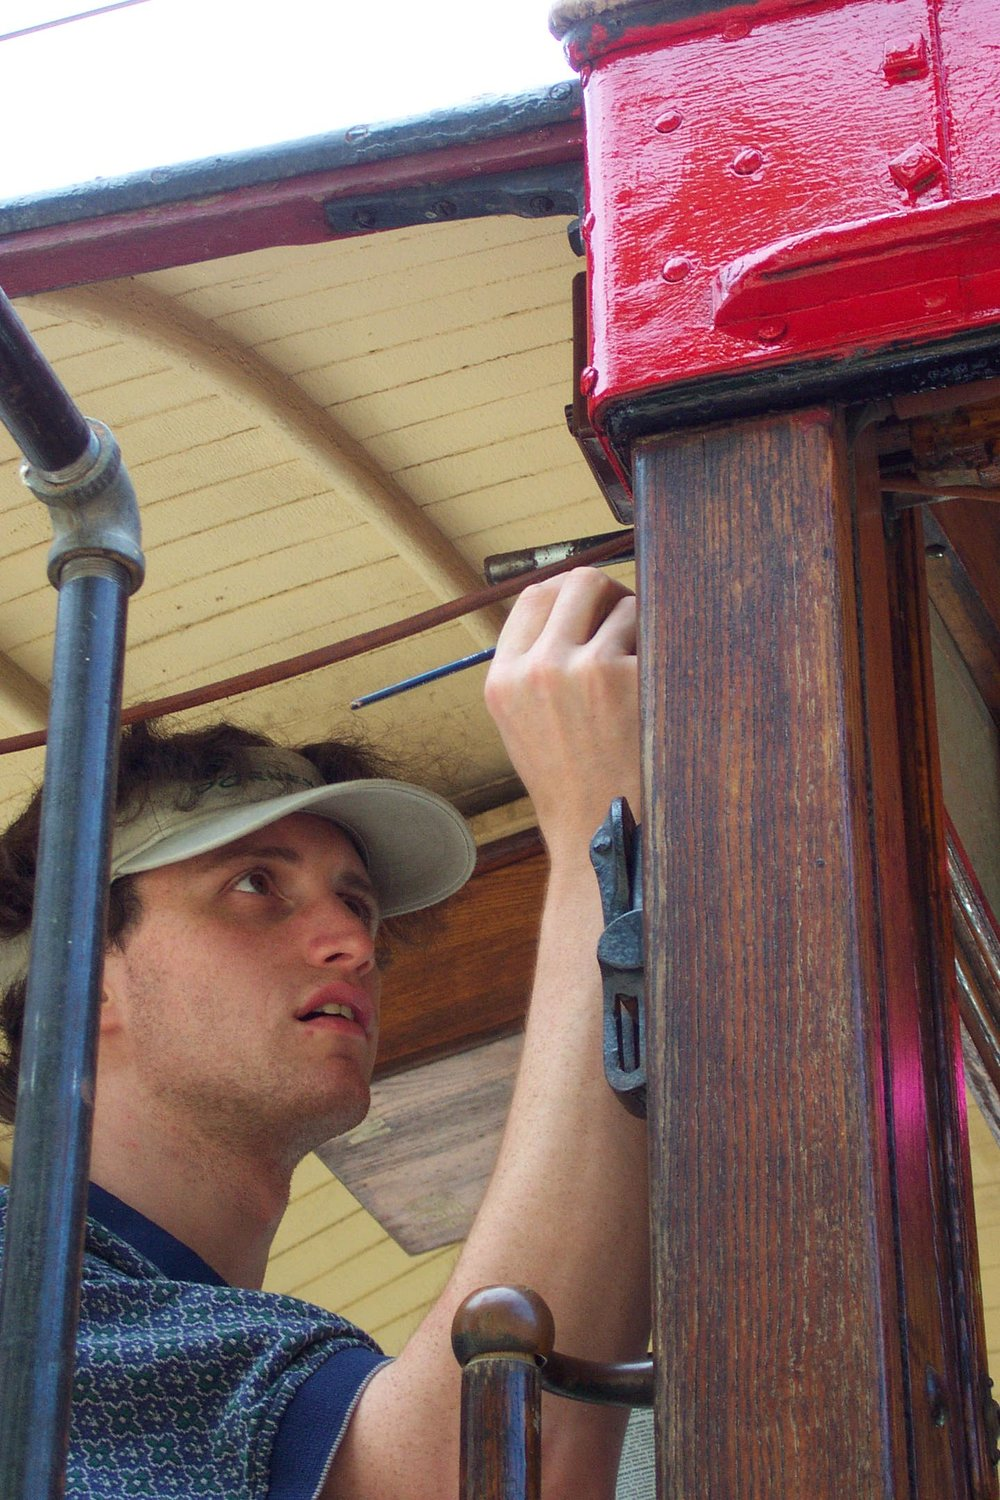 BSM Member Justin Thillman Working on collection car 554. Image Credit: John La Costa